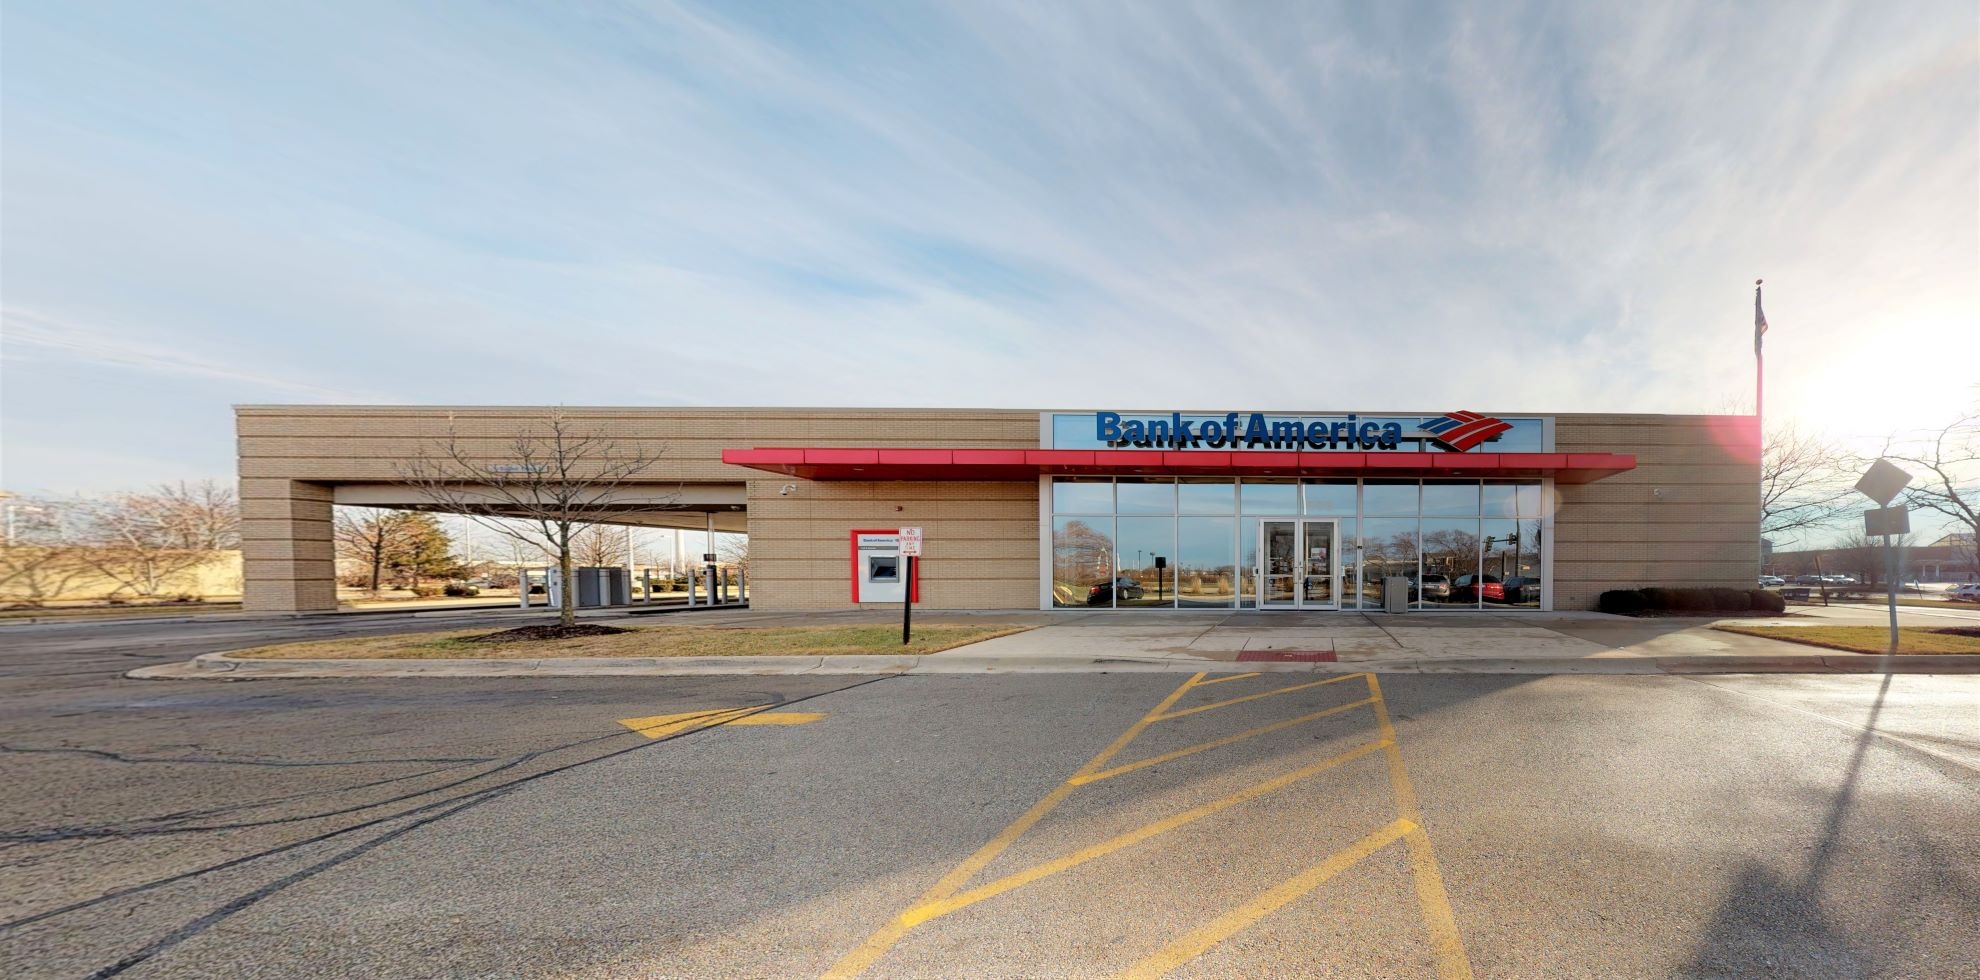 Bank of America financial center with drive-thru ATM and teller   896 N Route 59, Aurora, IL 60504